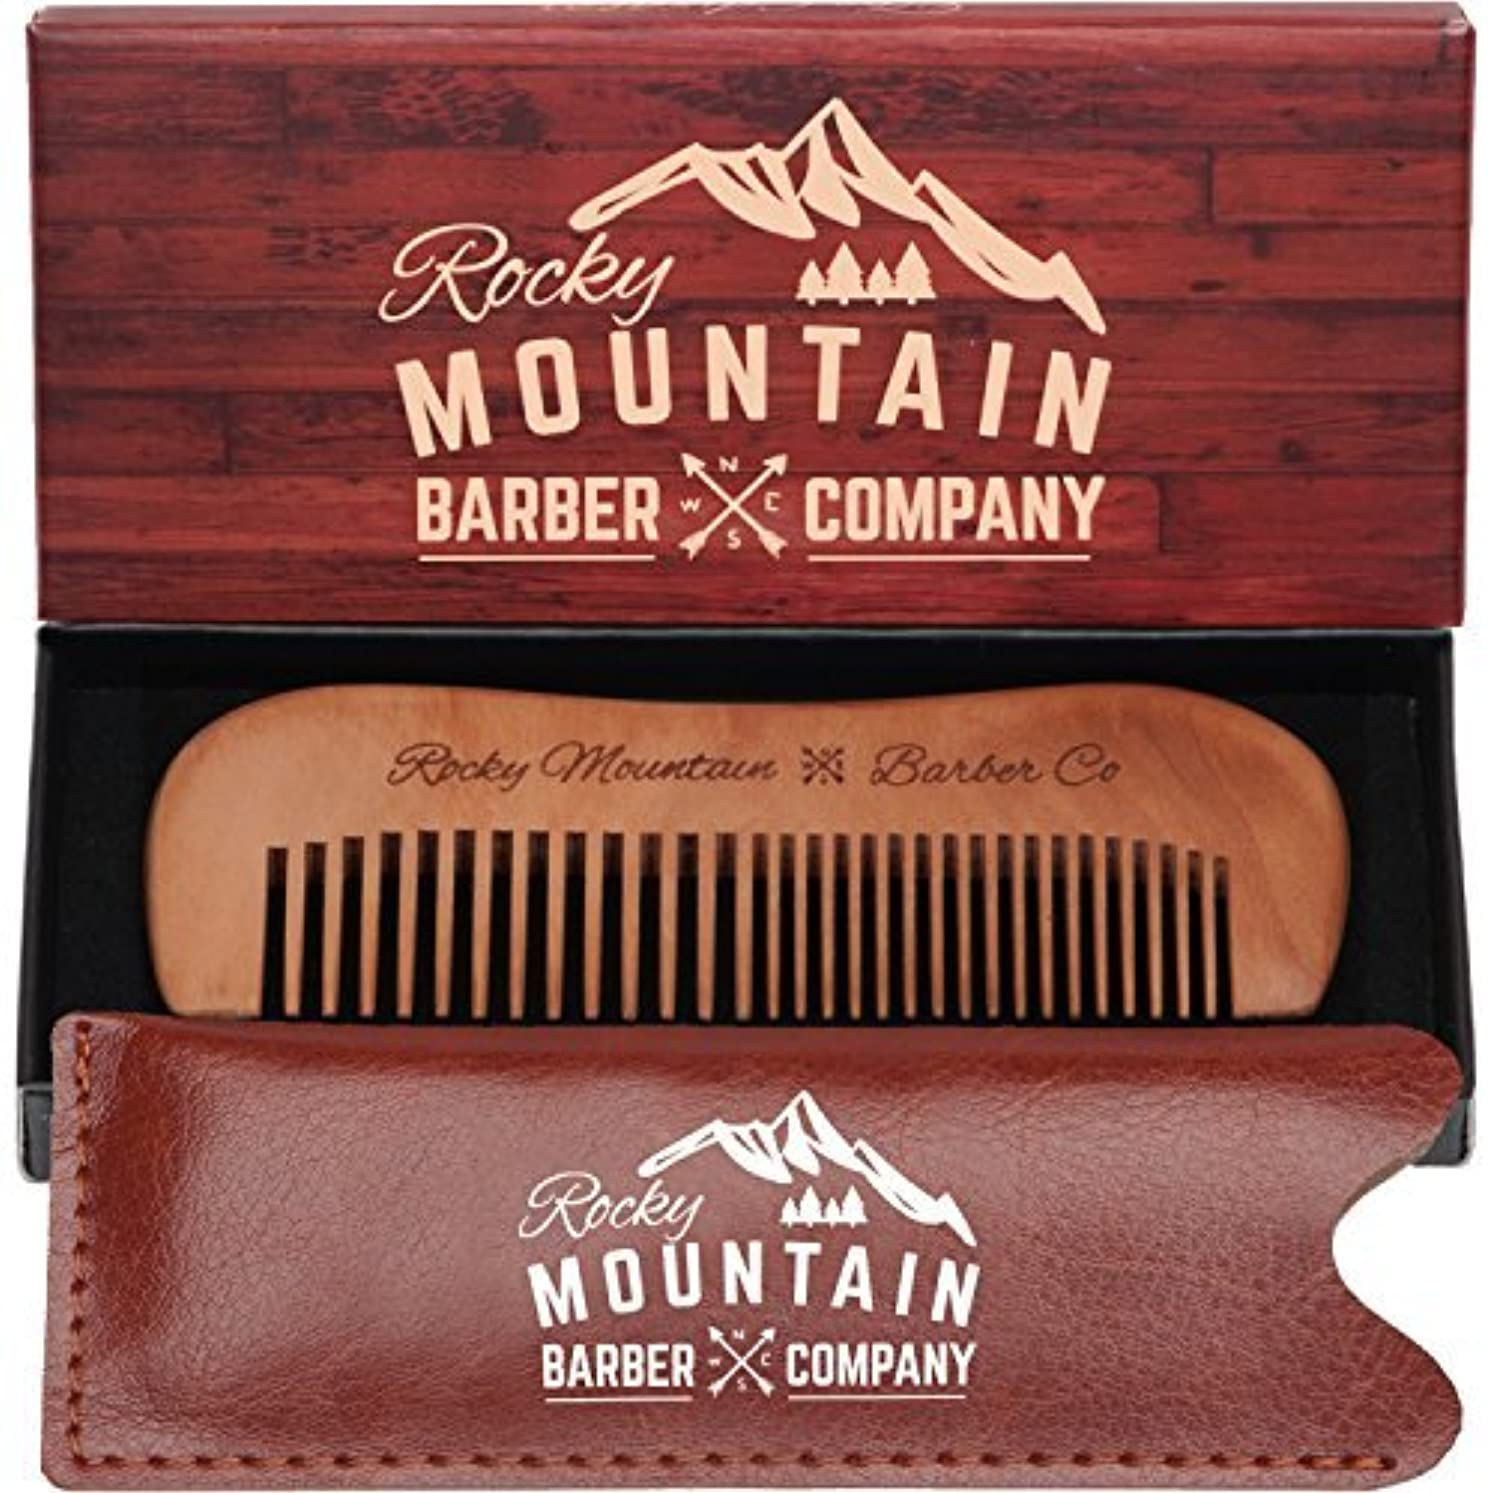 分解する遺跡重要な役割を果たす、中心的な手段となるTravel Hair Comb - Travel Size Comb with Fine and Medium Tooth for Mustache, Beard and Hair With Pocket Carrying Case - Anti-Static and Tangle-free. [並行輸入品]